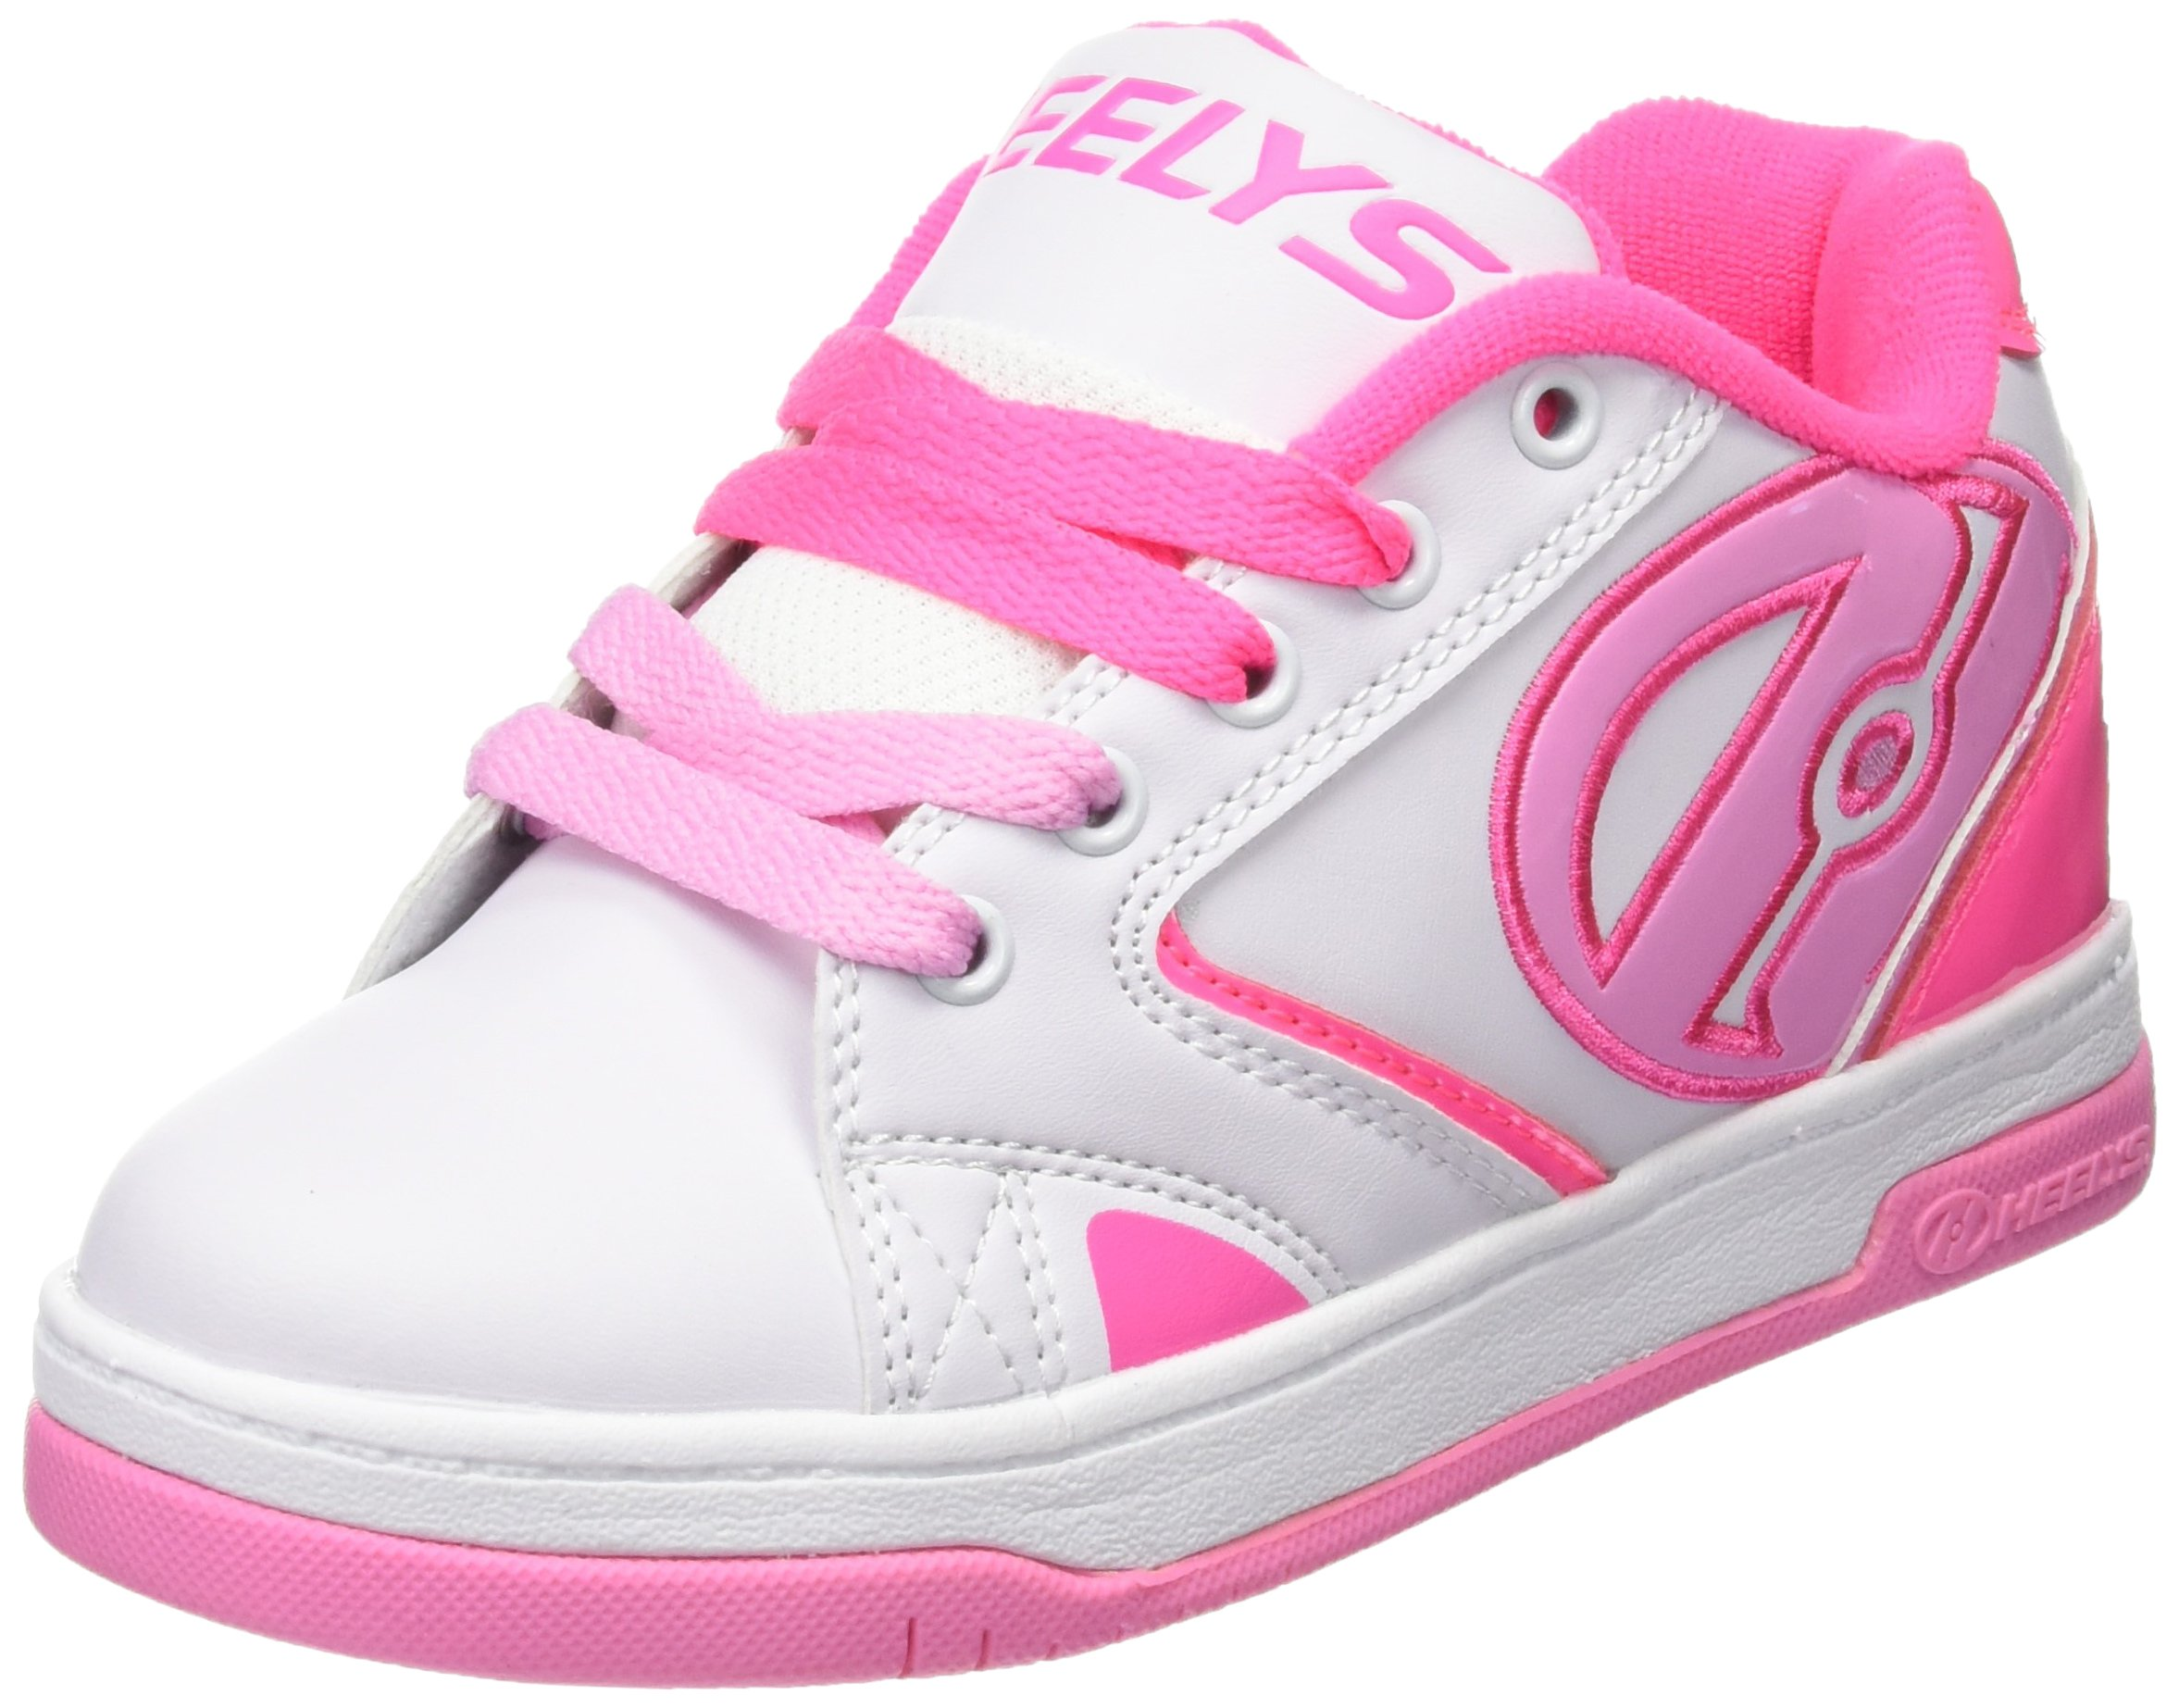 Heelys Propel 2.0 Sneaker (Little Kid/Big Kid), White/Hot Pink/Light Pink, 3 M Little Kid